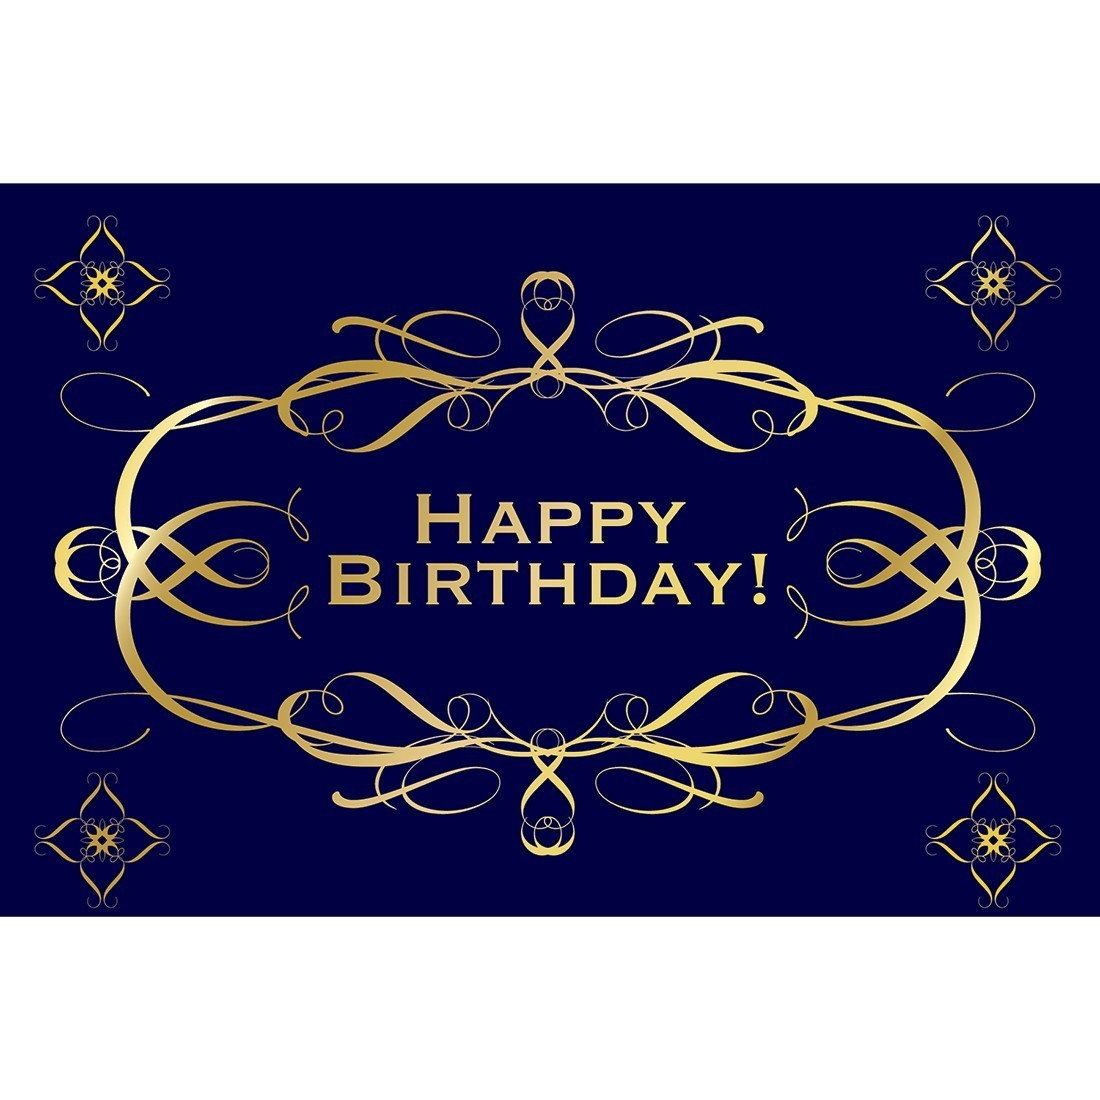 Black Gold Birthday Greeting Cards Standard Greeting Cards From